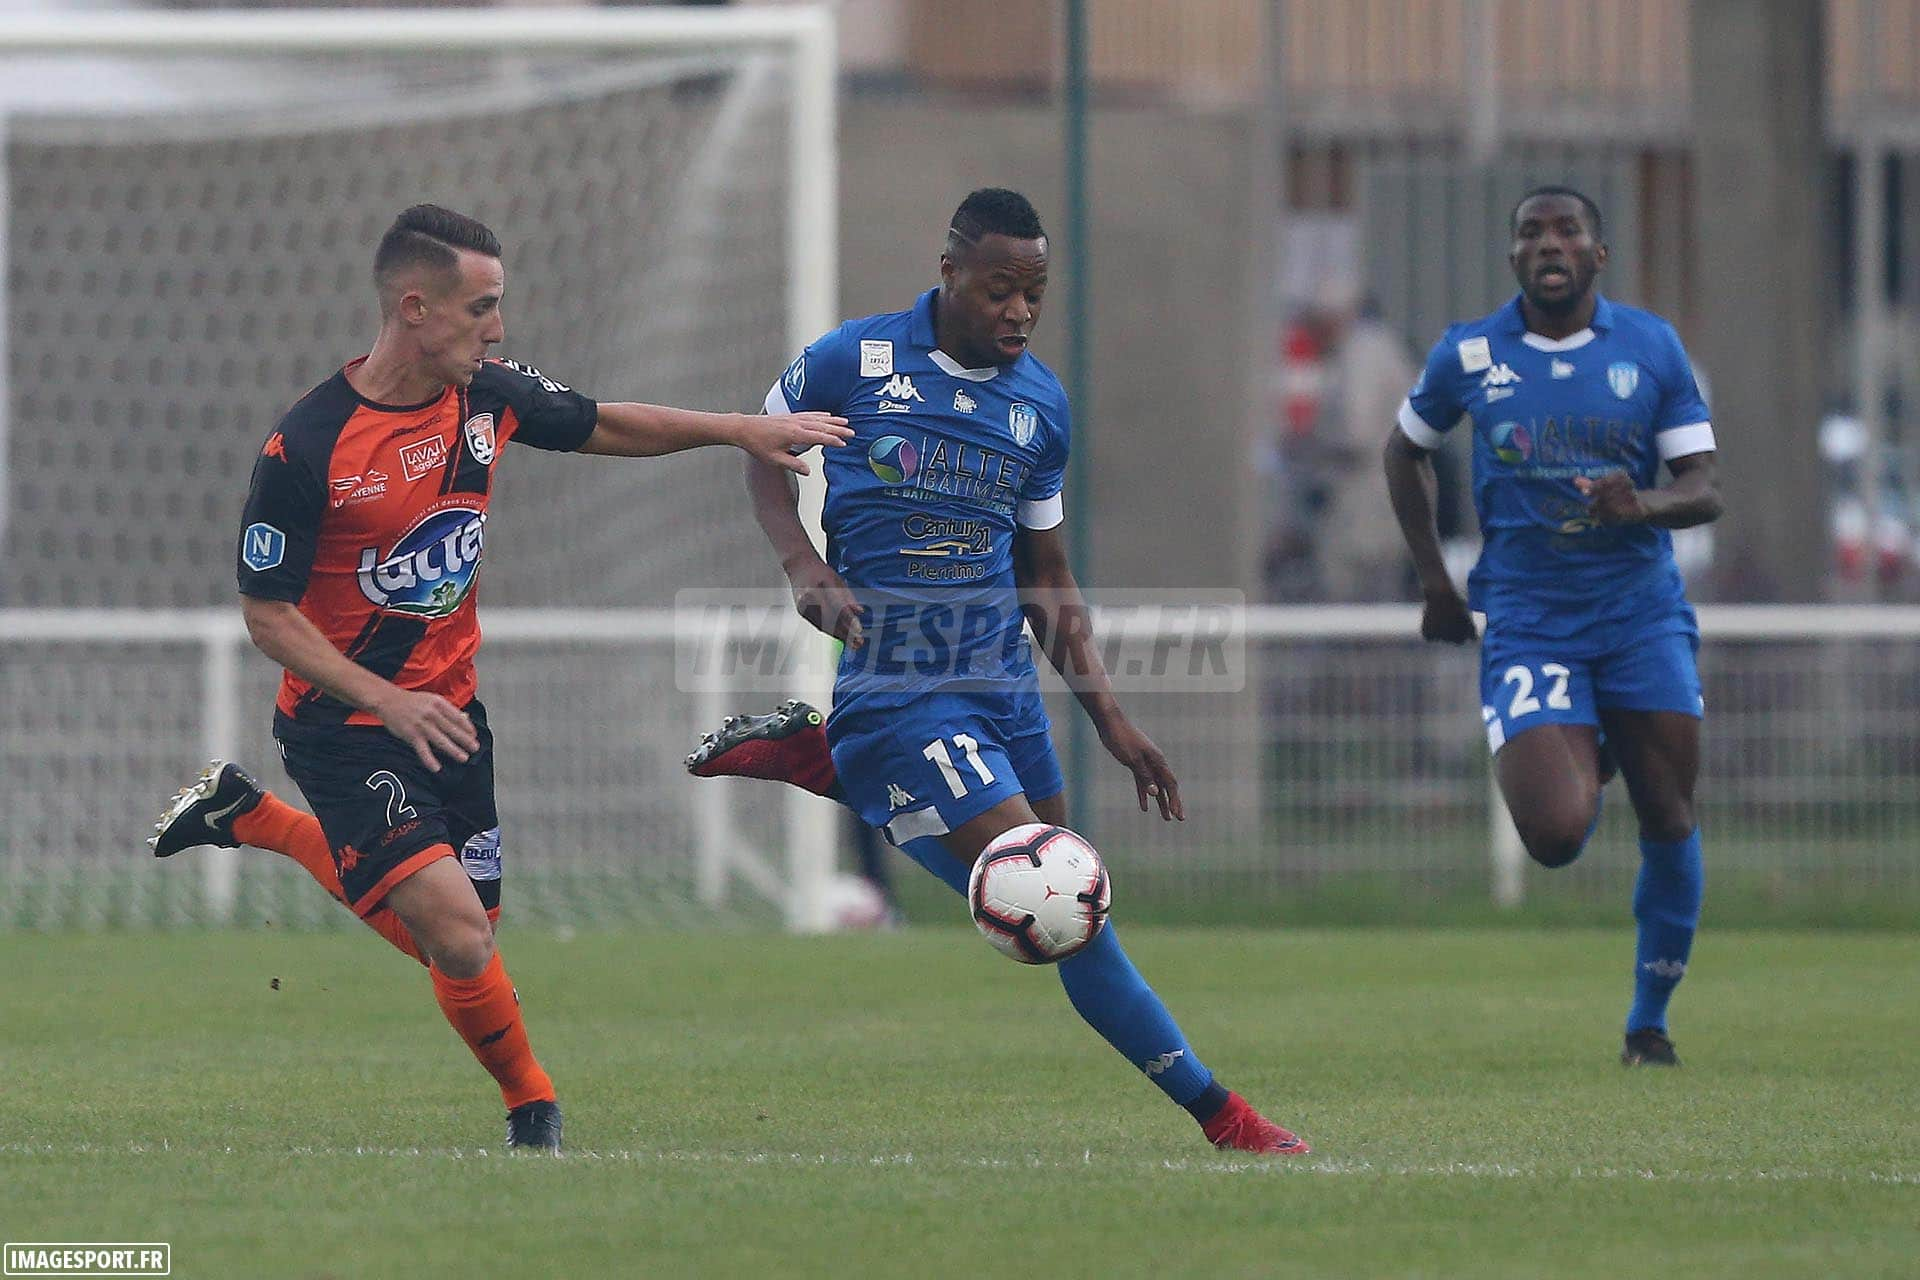 18-19-national-j04-drancy-laval_07